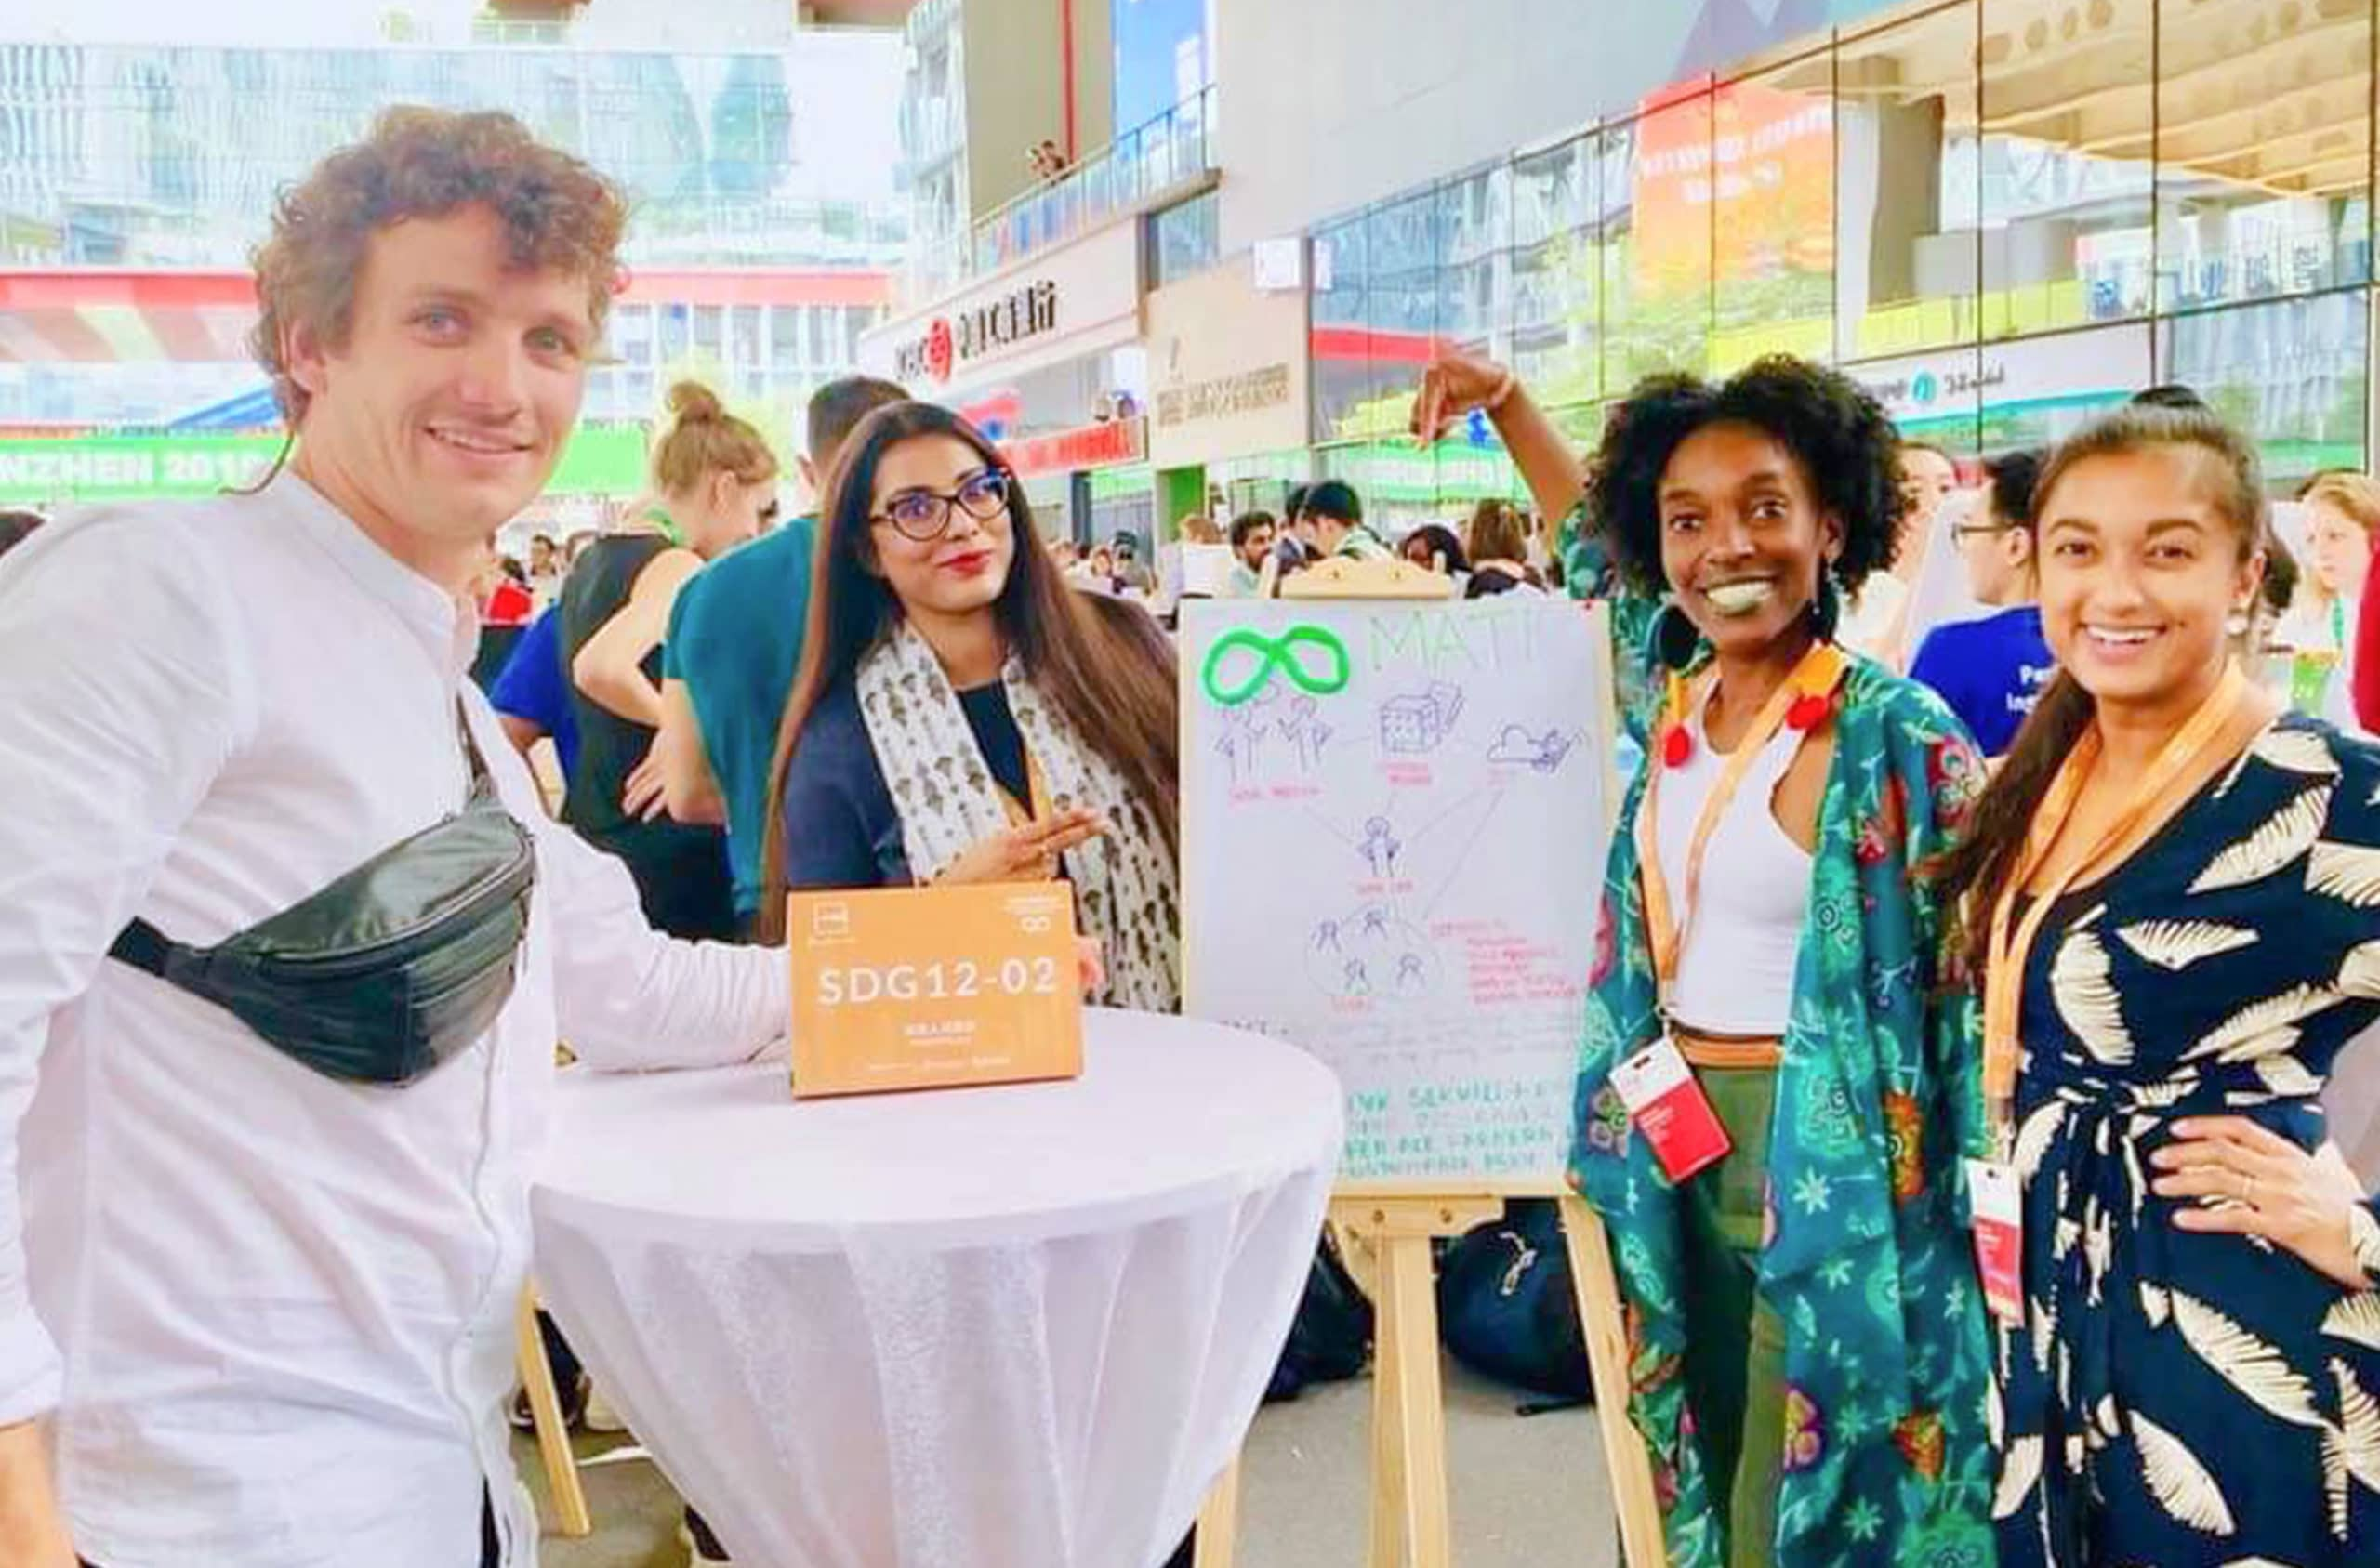 Rinita Rezwana, Bangladesh together with her group during UNLEASH 2019. Rinata's group worked on a solution to disseminate information about organic fertilizing techniques in rural Bangladesh. Photo: Courtesy of Rinita Rezwana.